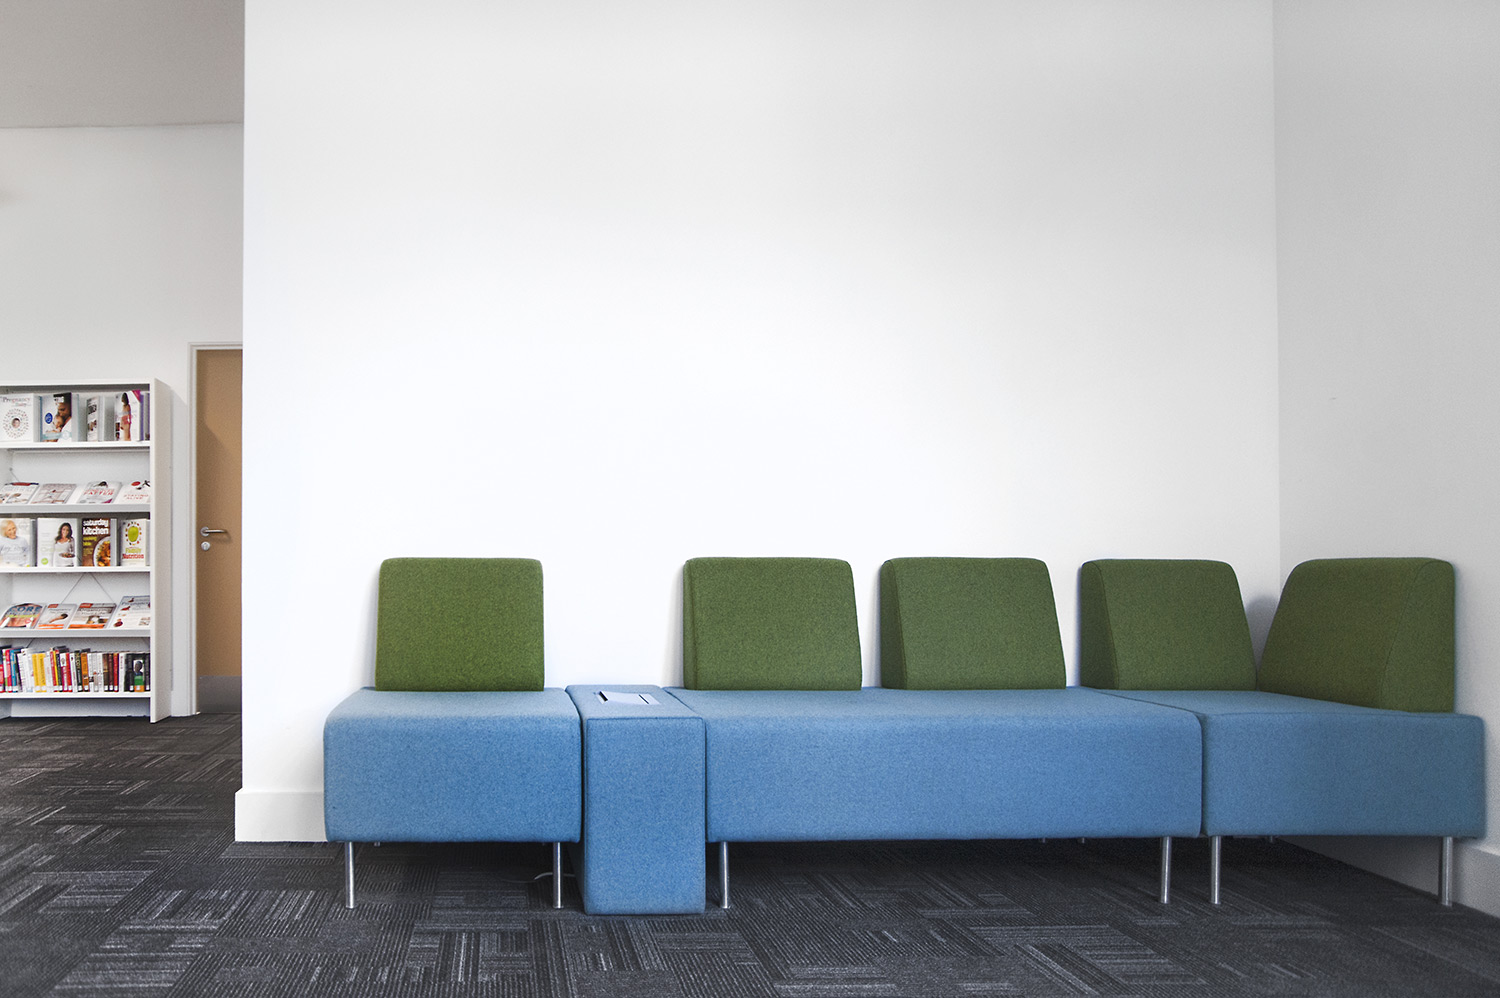 Modular Sofa System. Greenwich Public Library, UK